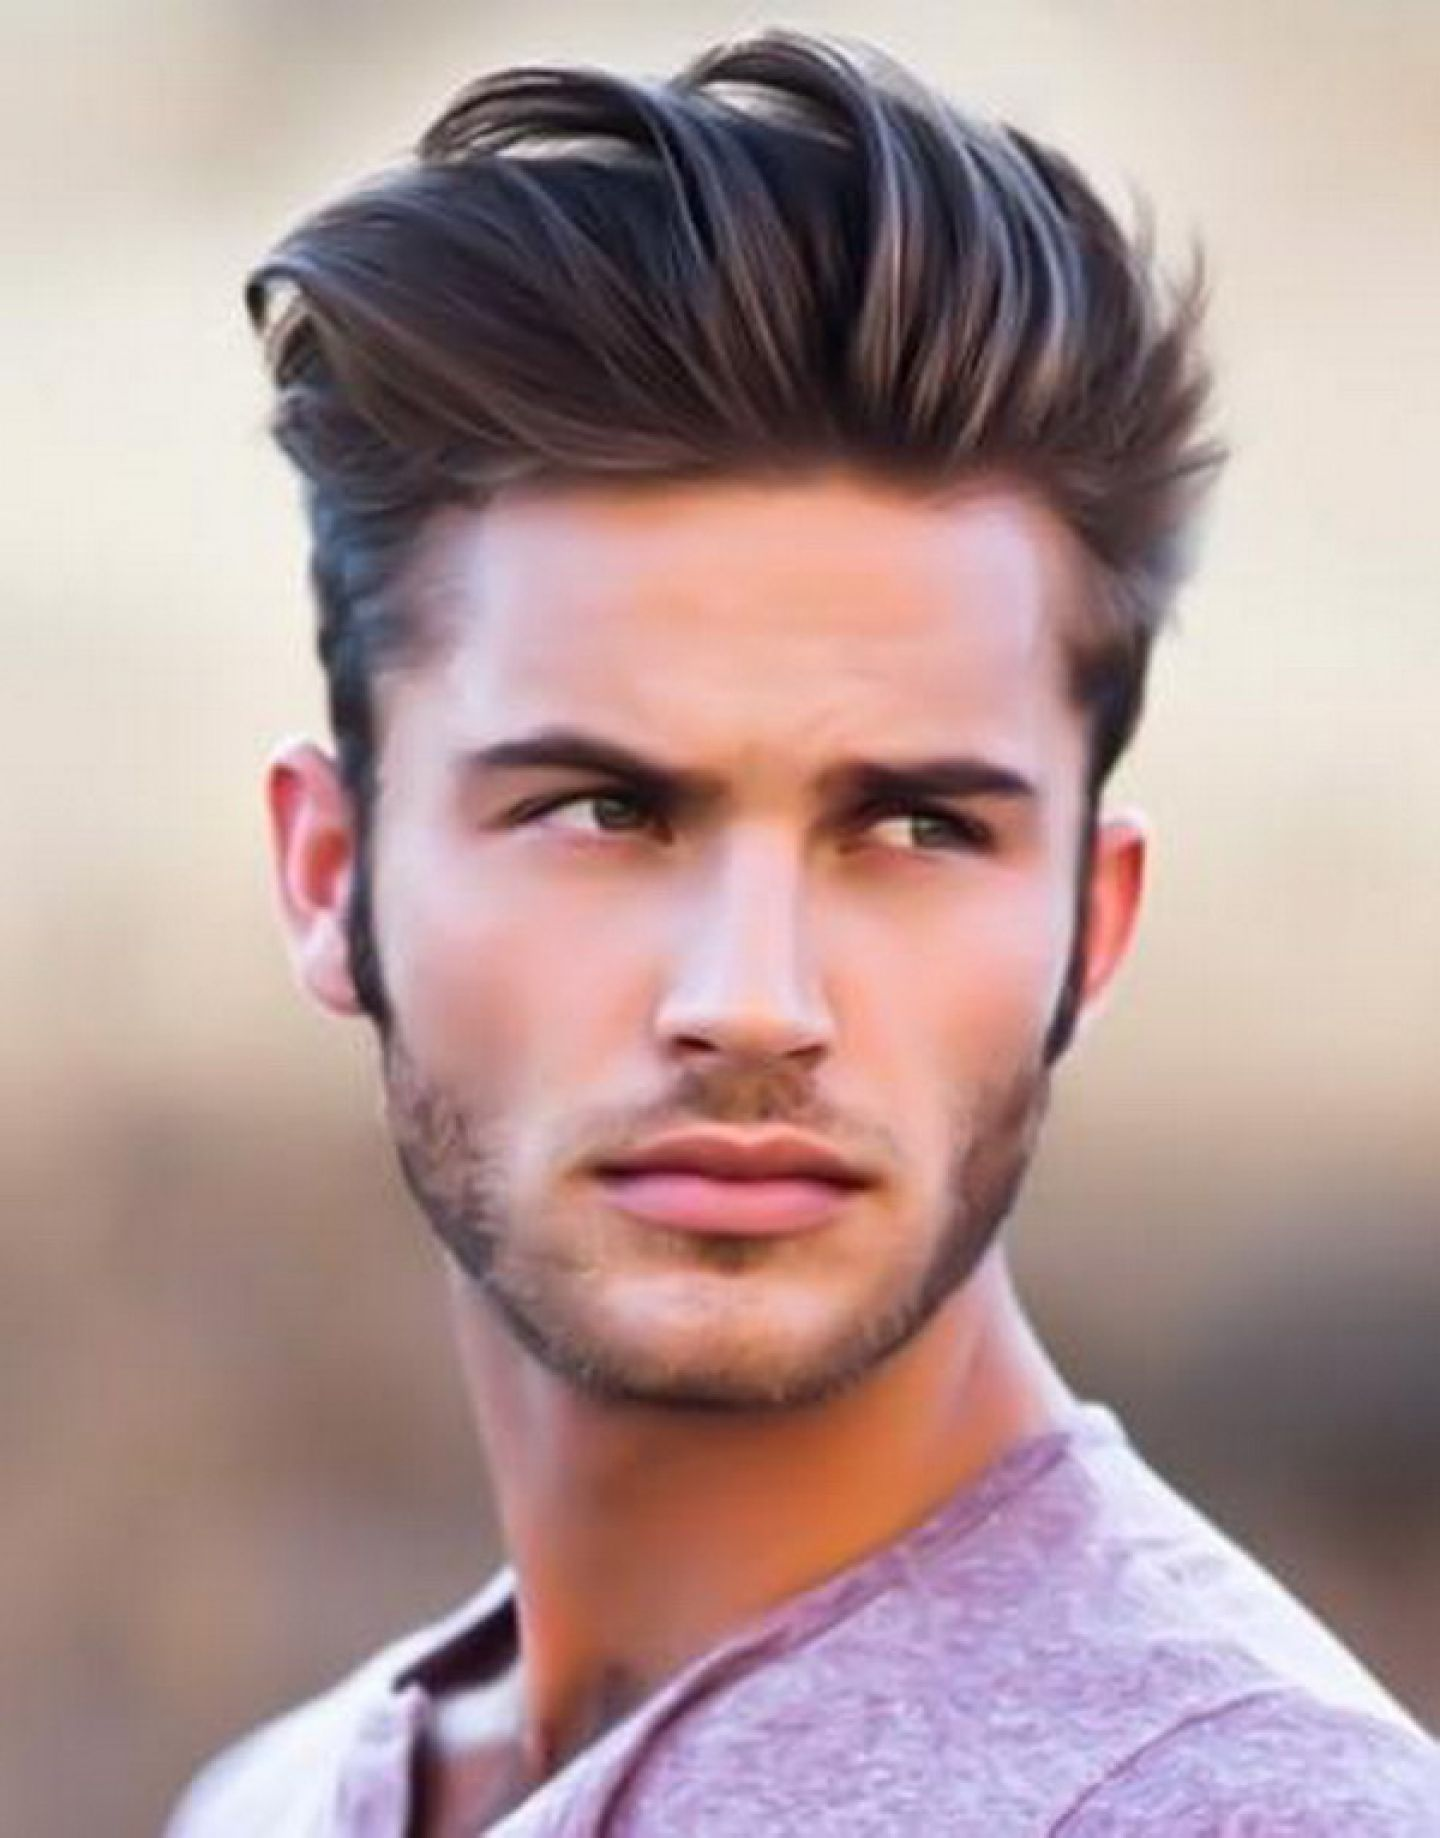 Prime Boys Hipster Haircuts Men Boys Get Free Printable Hairstyle Pictures Short Hairstyles Gunalazisus